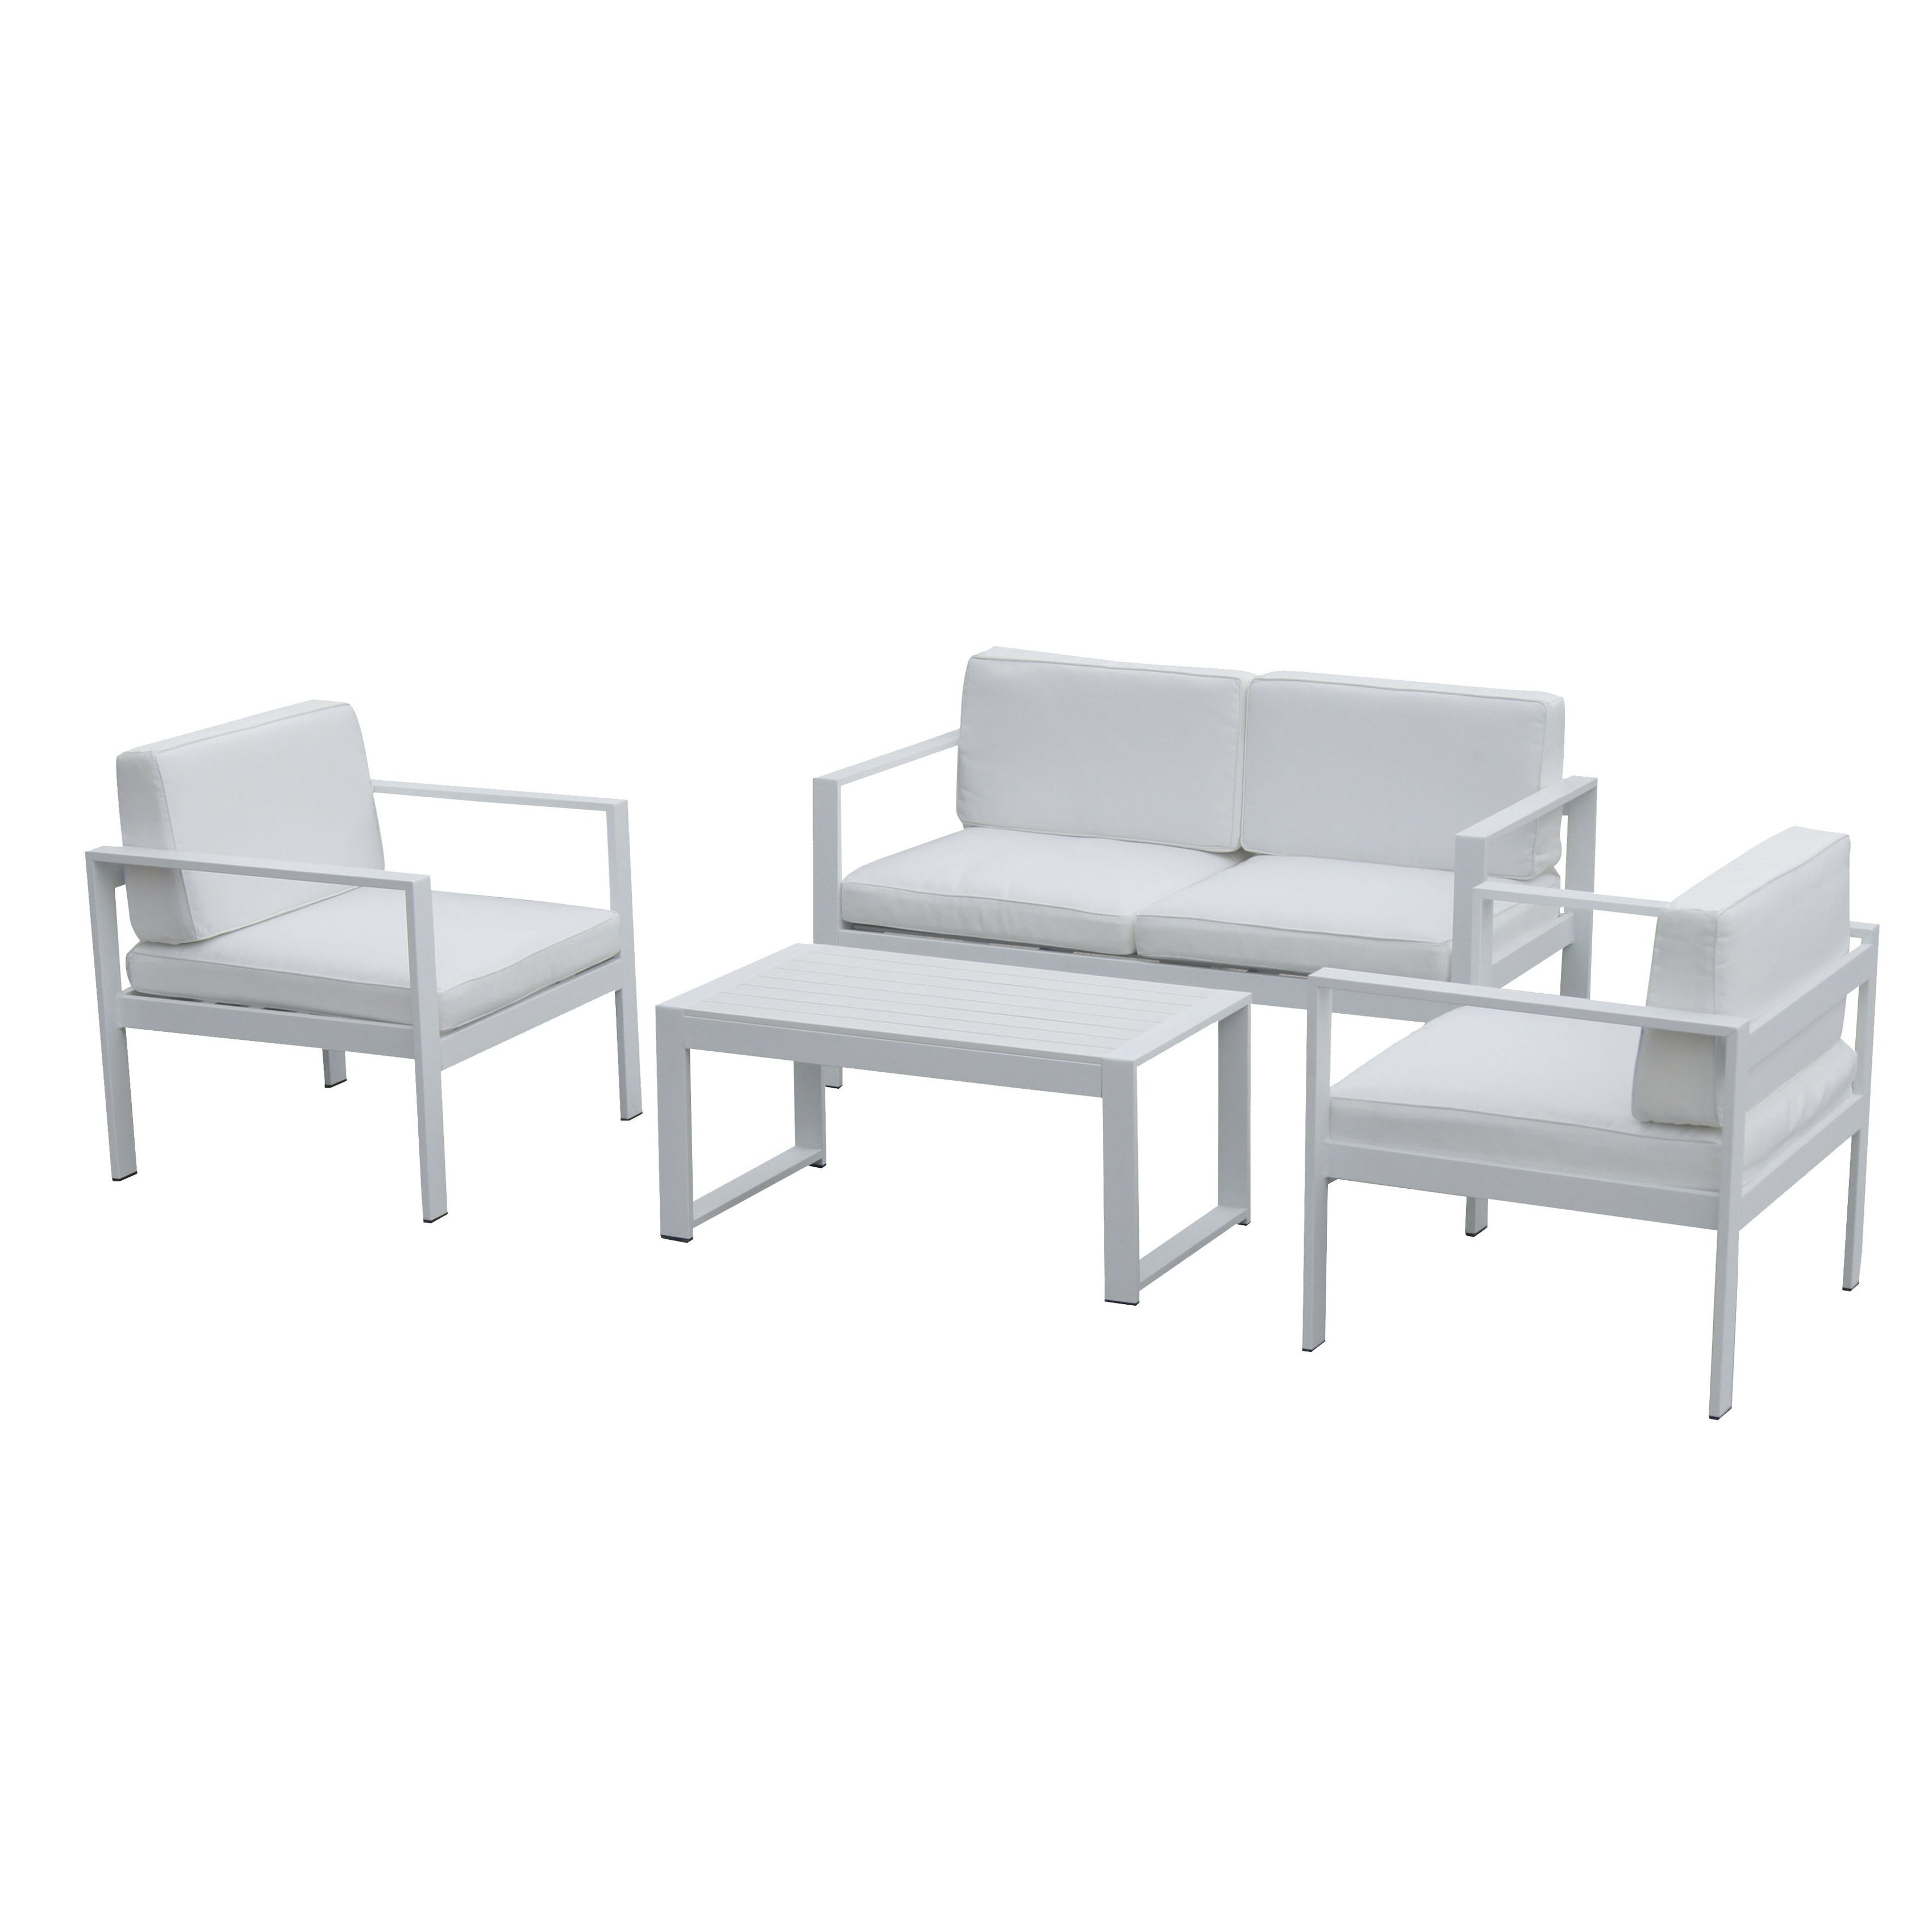 Shop Pangea Home Karen Fabric/ Aluminum 4 Piece Sofa Set – Free With Regard To Karen Sofa Chairs (Image 19 of 20)